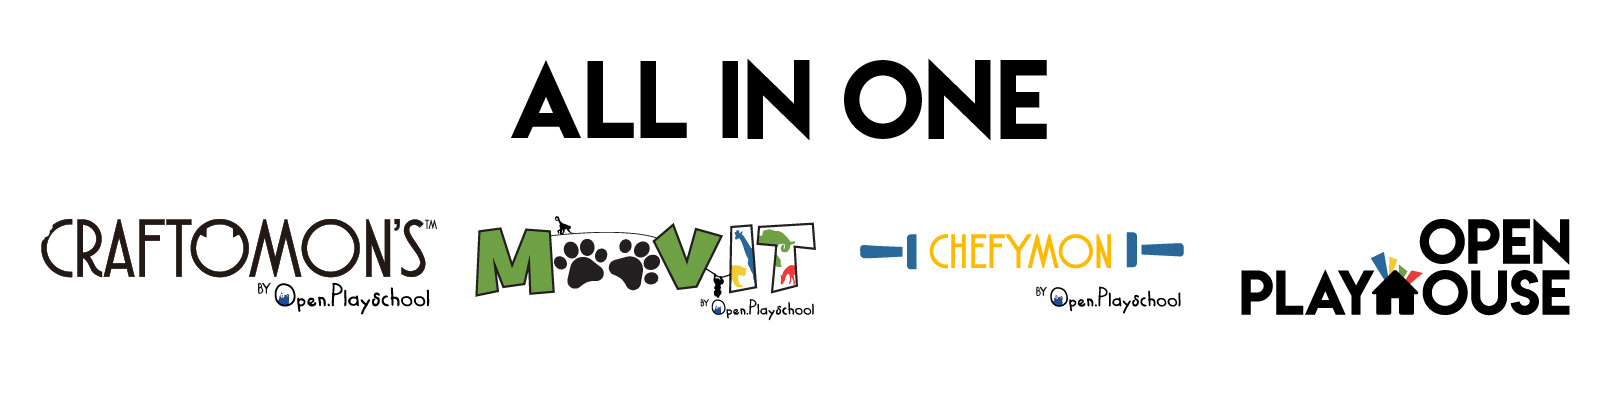 All in One Logo-01.jpg